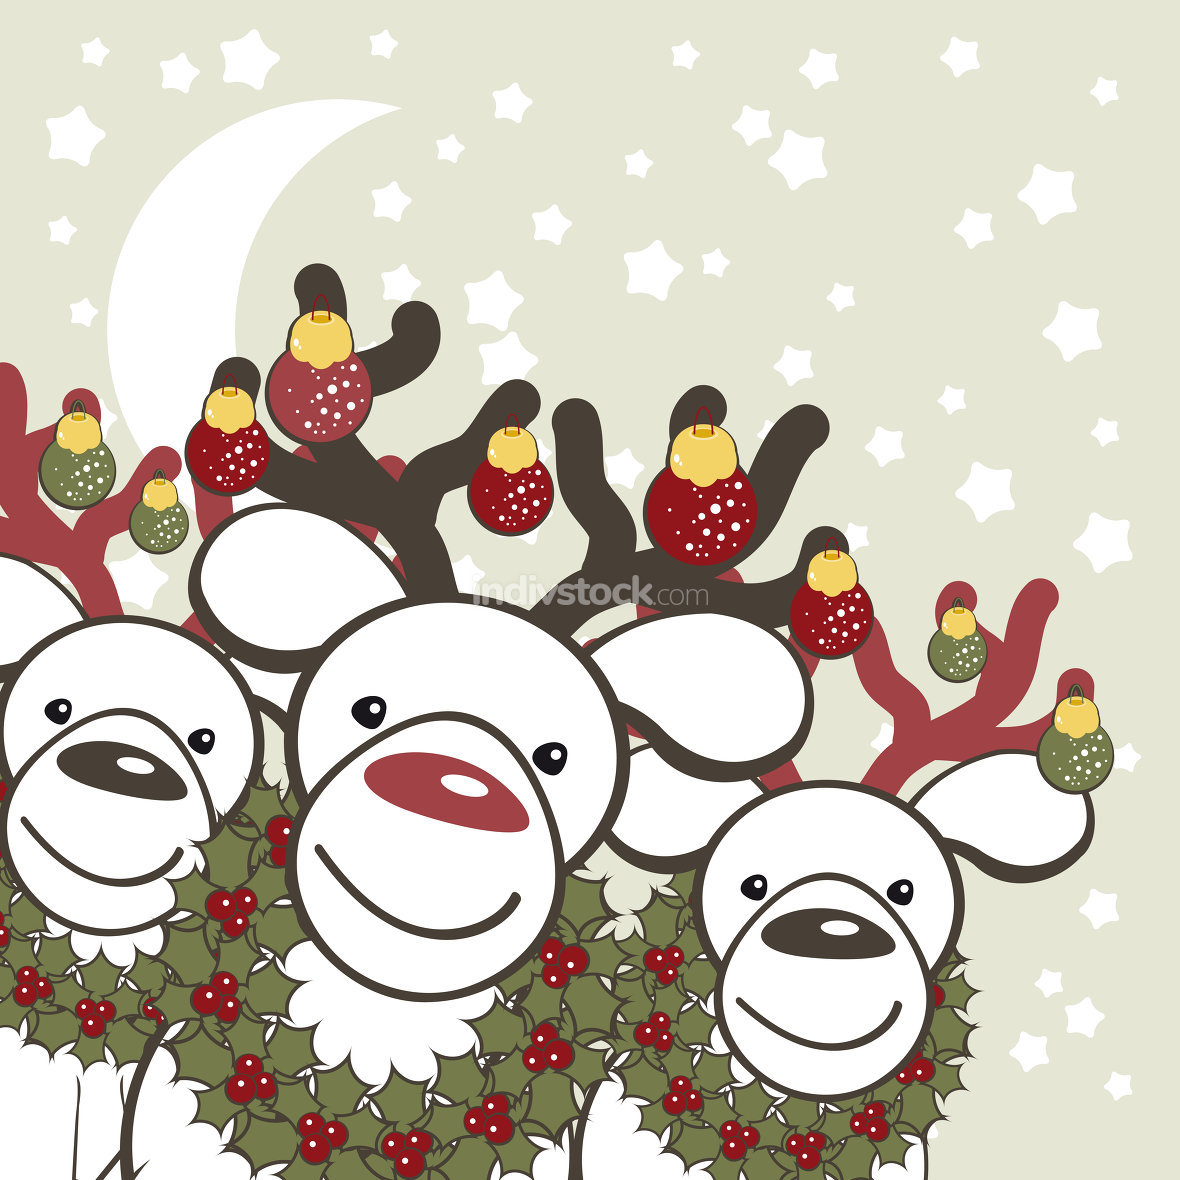 Christmas background with funny reindeers Santa Claus.